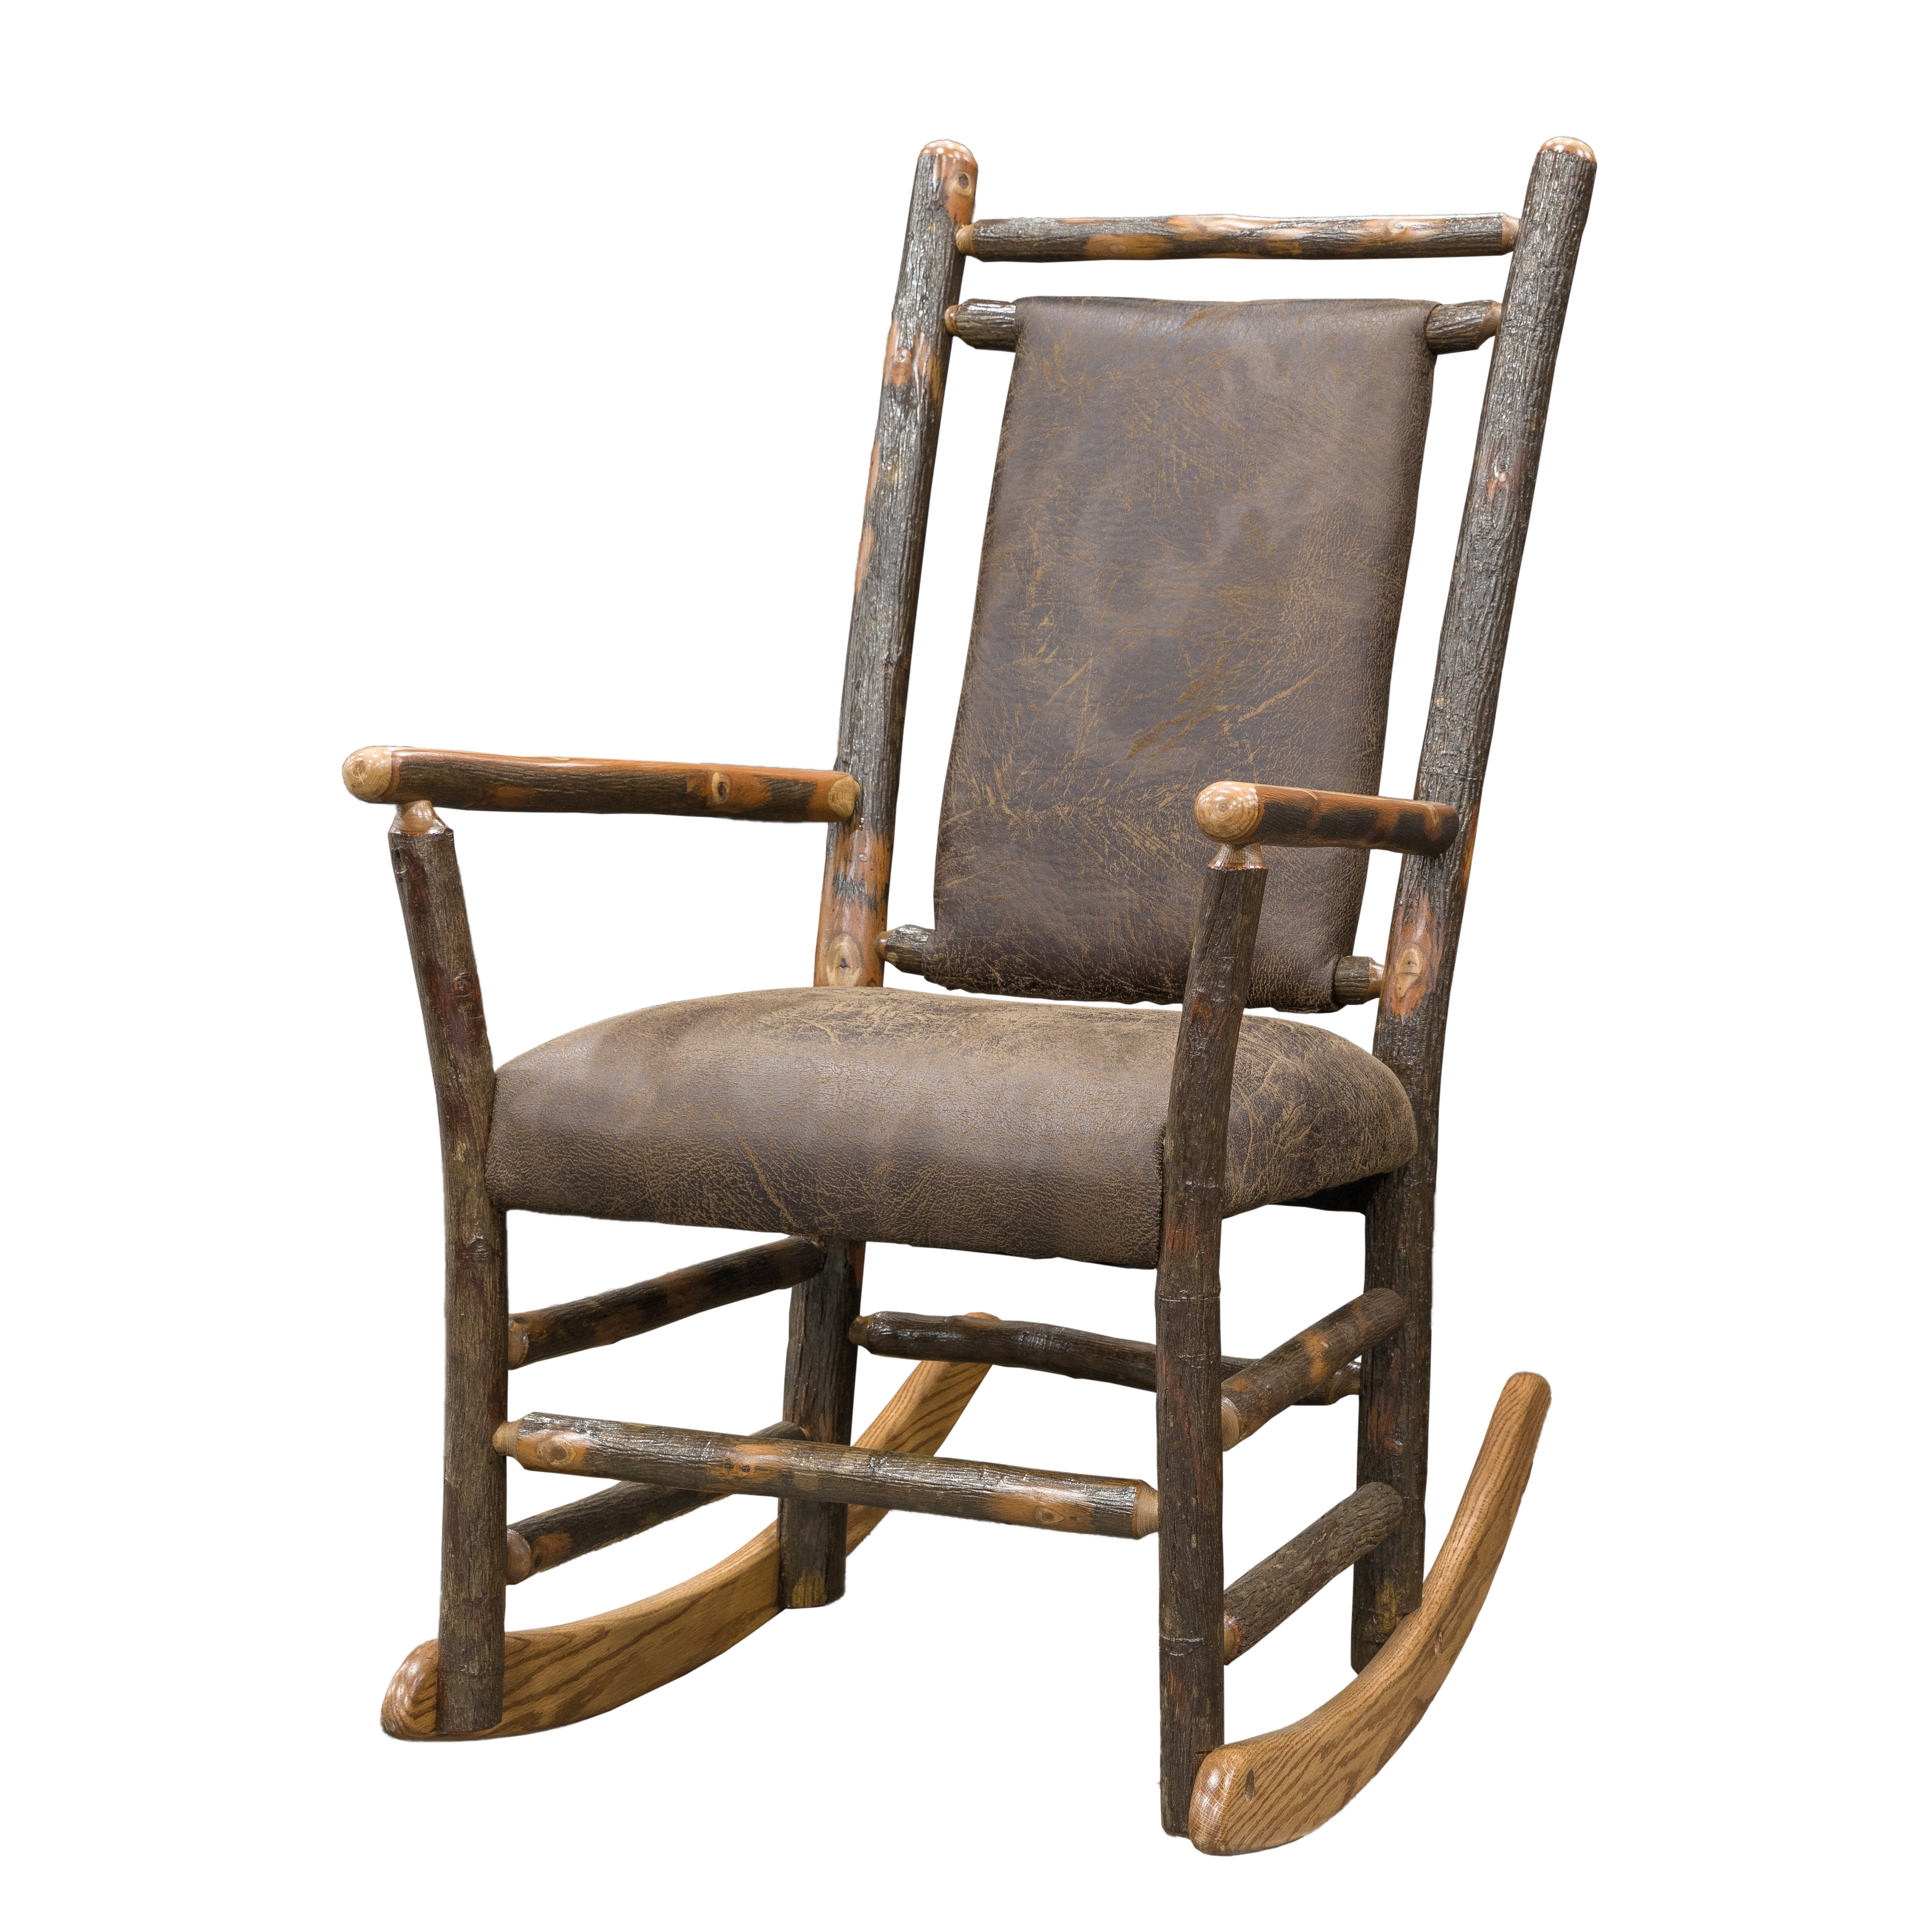 Most Recently Released Rocking Chairs With Lumbar Support In Rustic Hickory Rocking Chair With Faux Brown Leather Seat And Back (View 6 of 20)